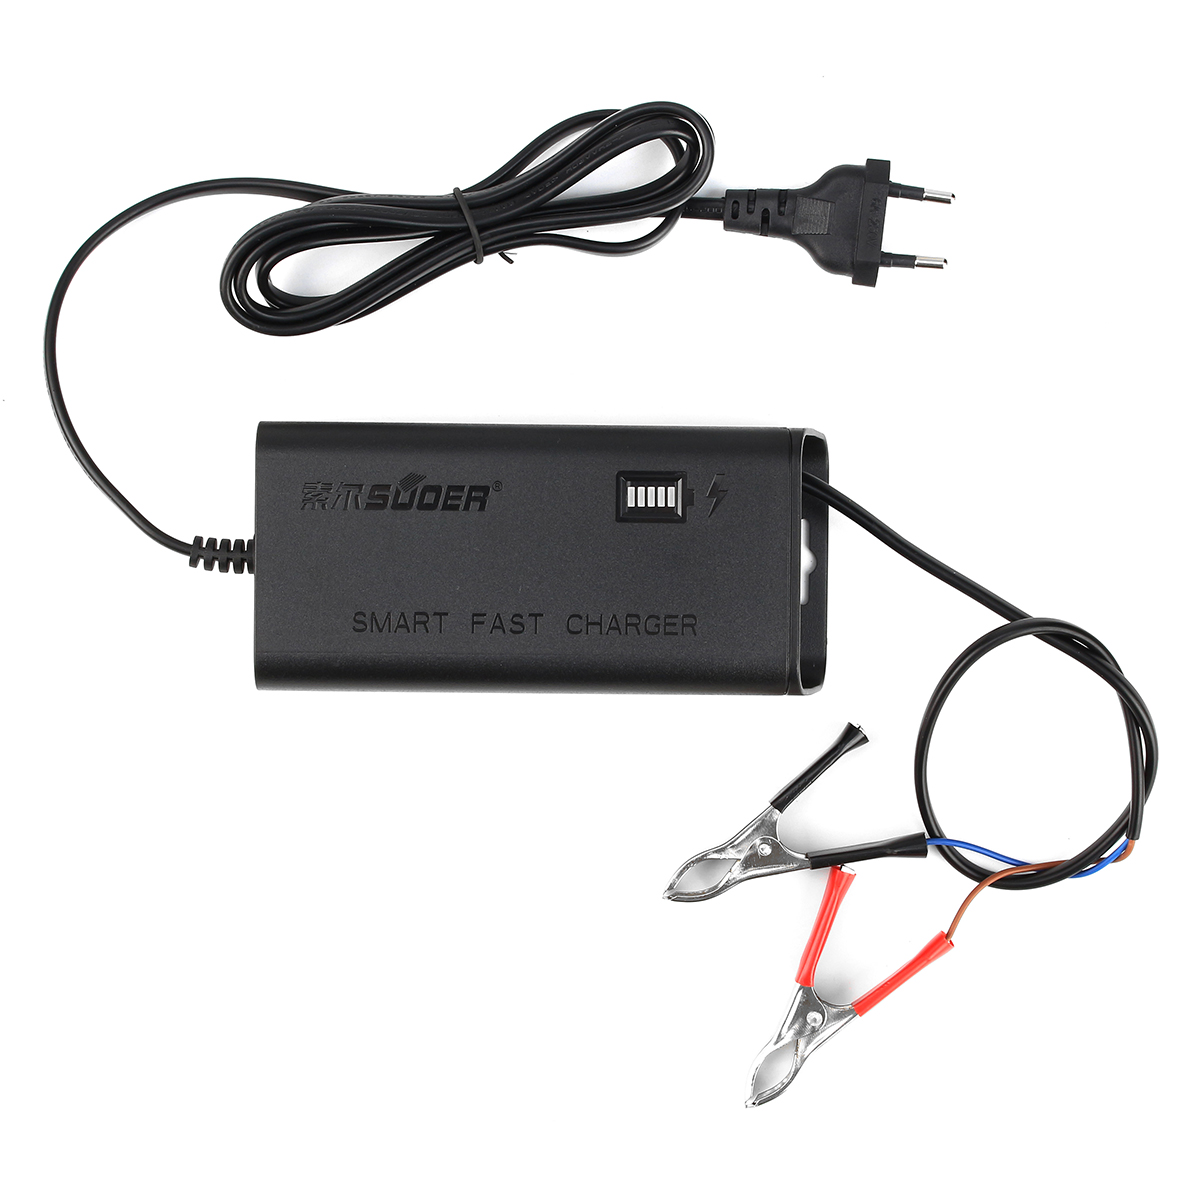 12V 5A Car Battery Charger Automatic Intelligent Pulse Repair Type LED Display